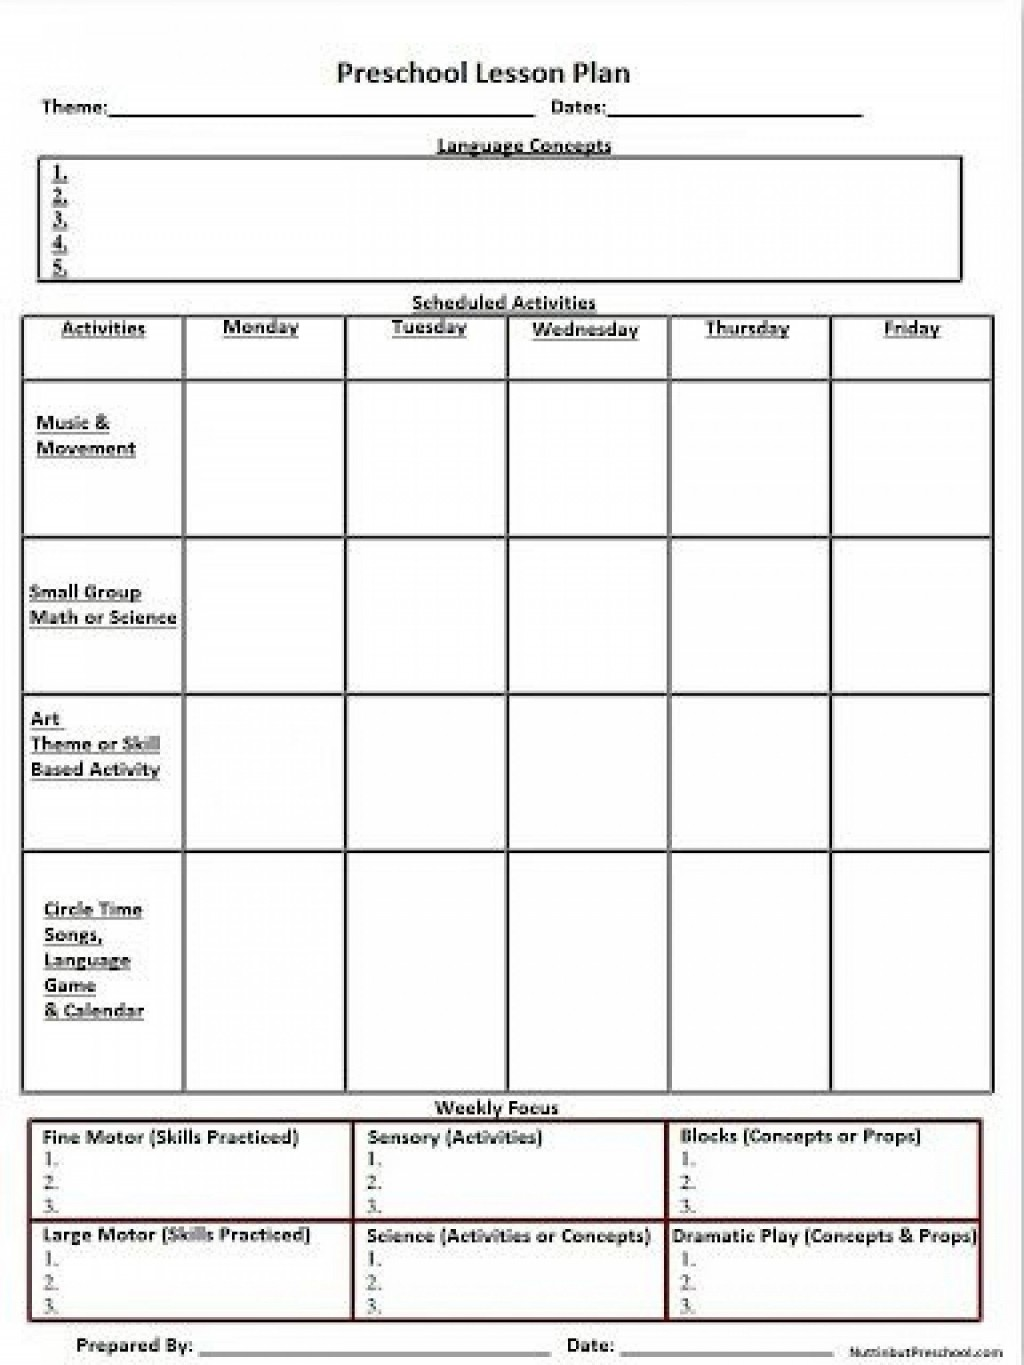 007 Shocking Weekly Lesson Plan Template High School Def  Free For Math Example HistoryLarge